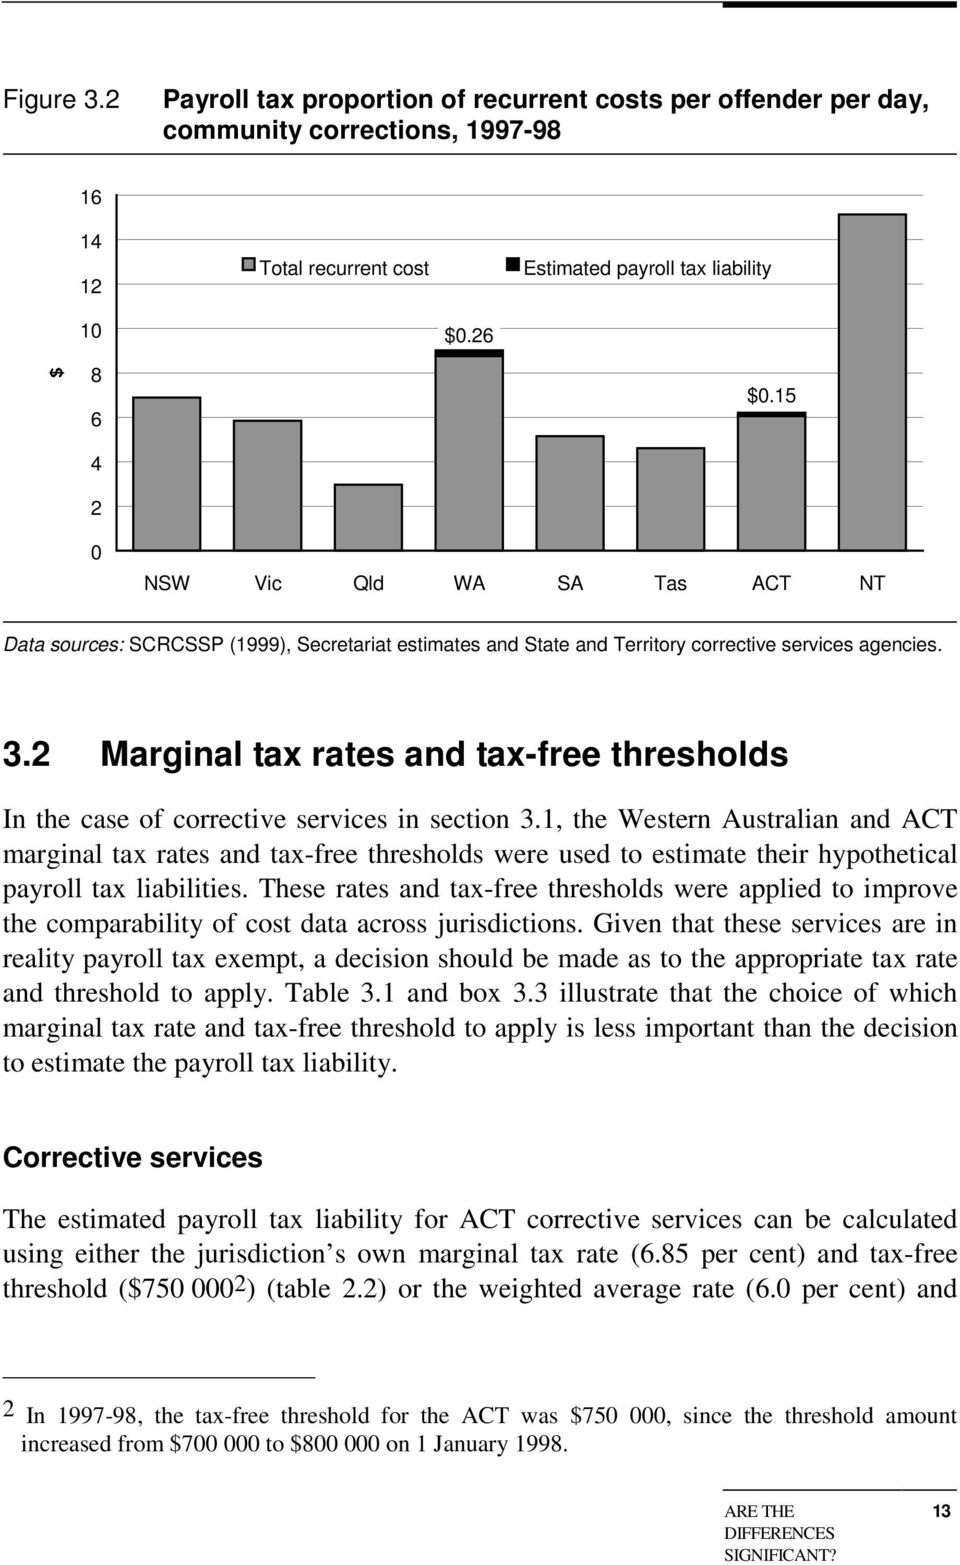 2 Marginal tax rates and tax-free thresholds In the case of corrective services in section 3.